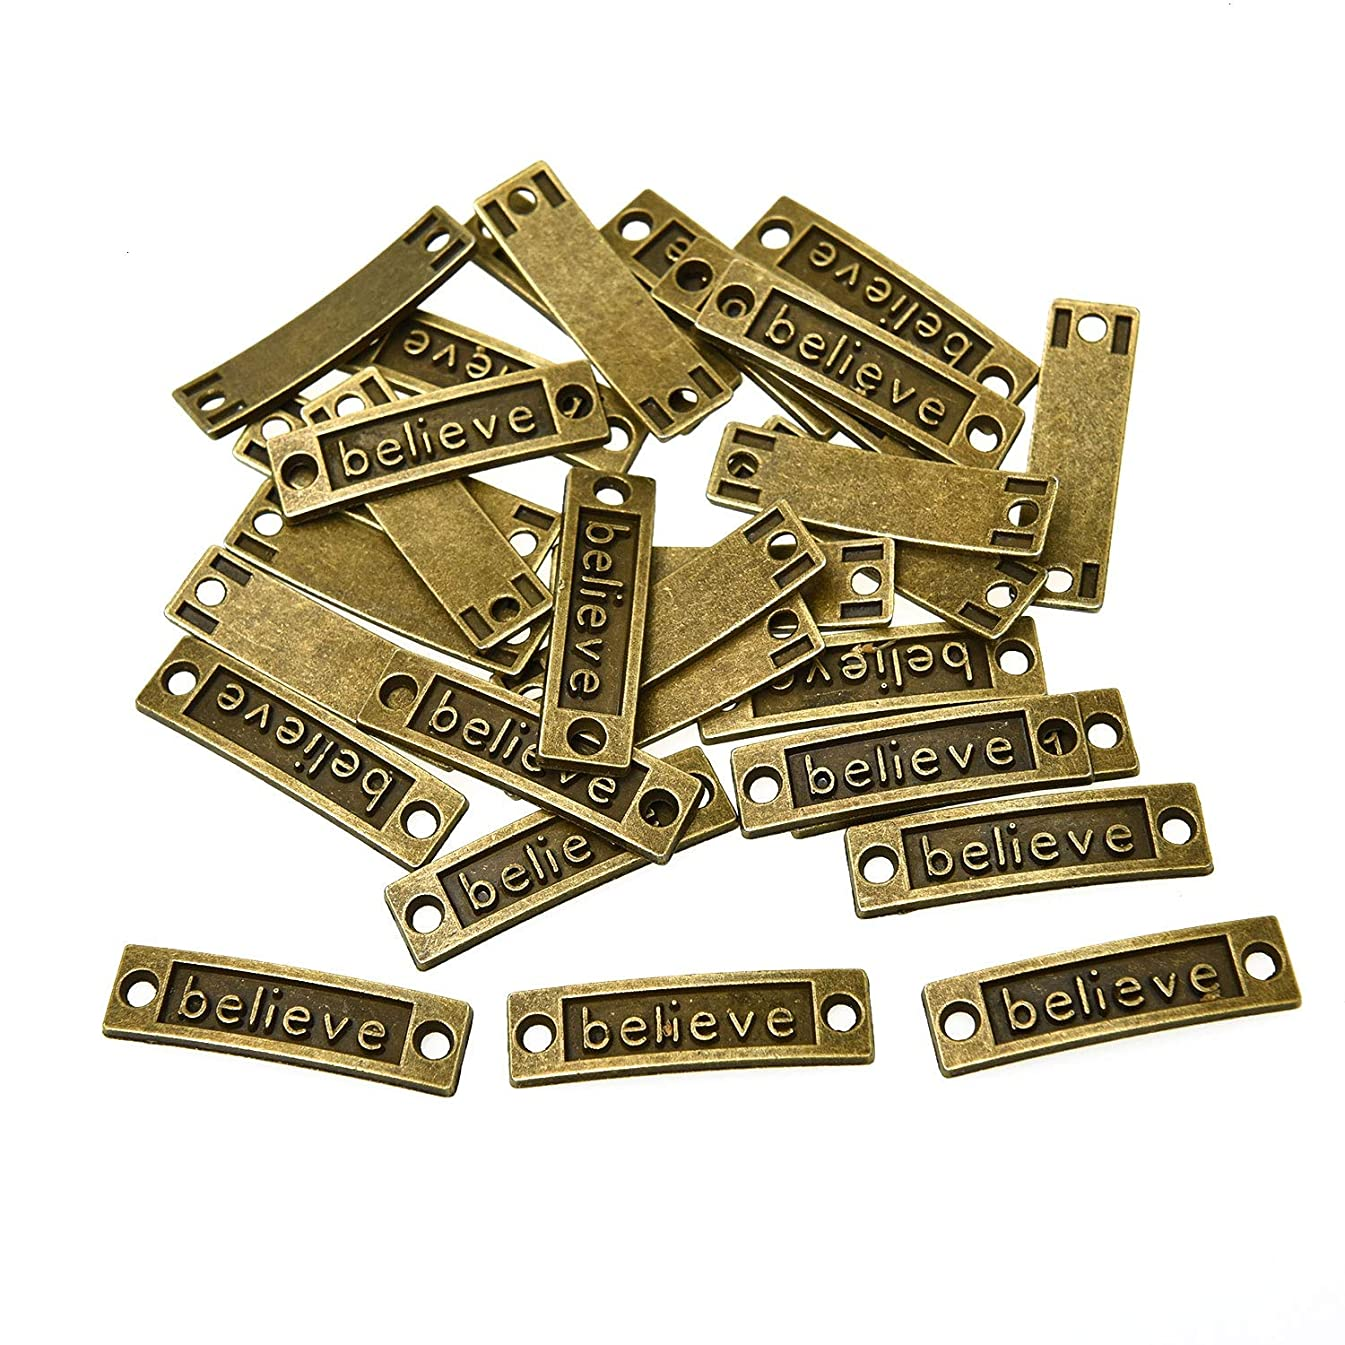 Monrocco 30 Pieces Inspirational Message Connector Charms Believe Connector Charms for DIY Bracelet Jewelry Making Findings, Antique (Bronze Tone)